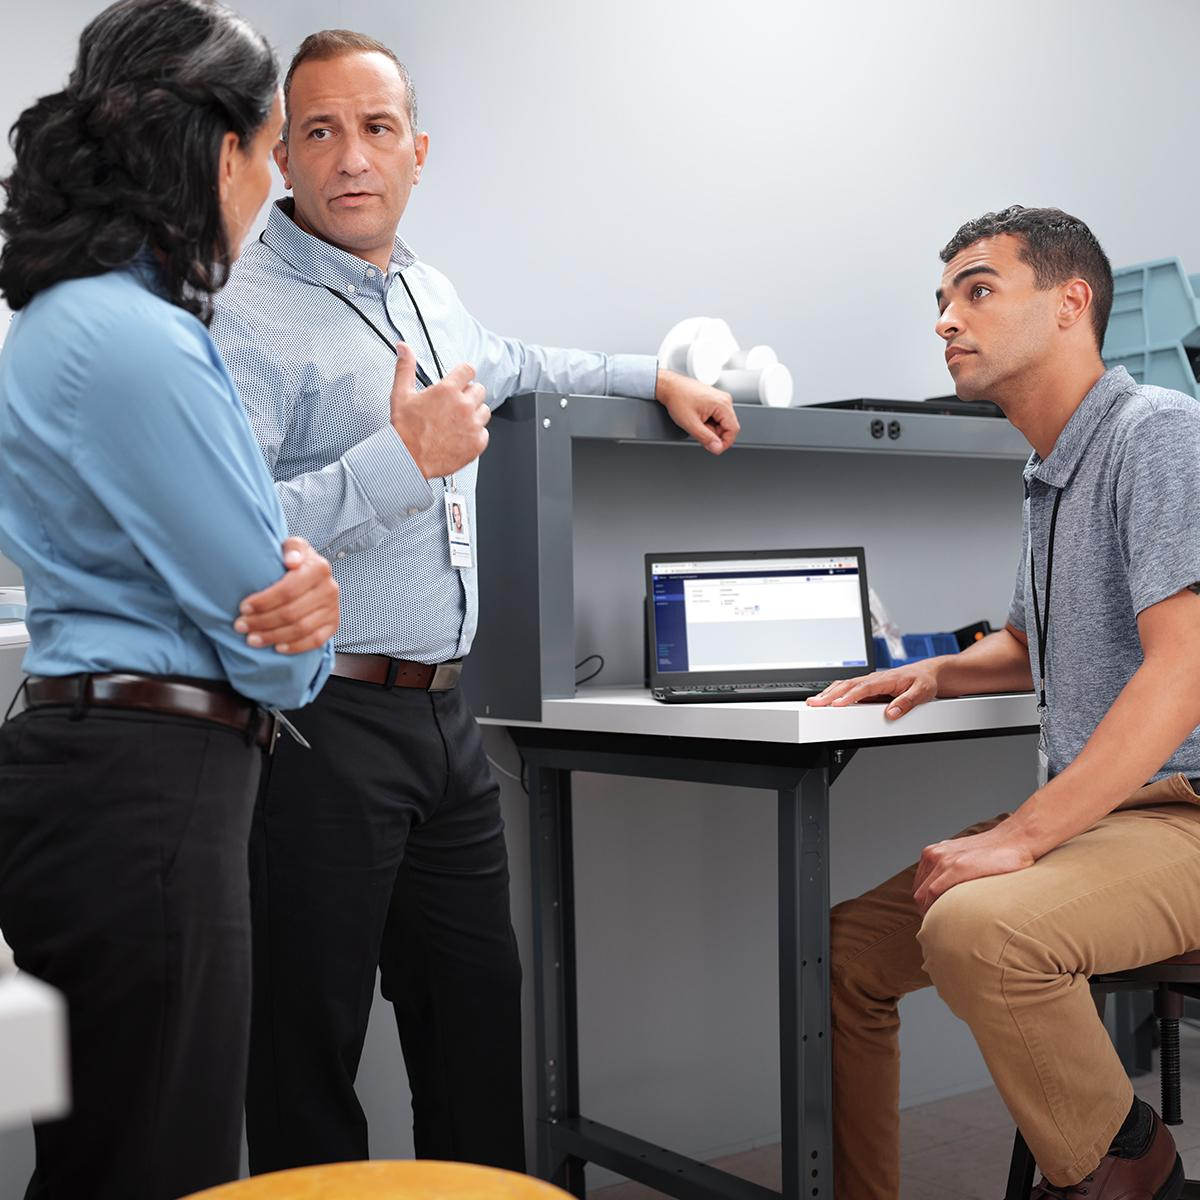 A team of biomedical engineers discusses proactive maintenance schedules using the SmartCare™ Remote Management tool.